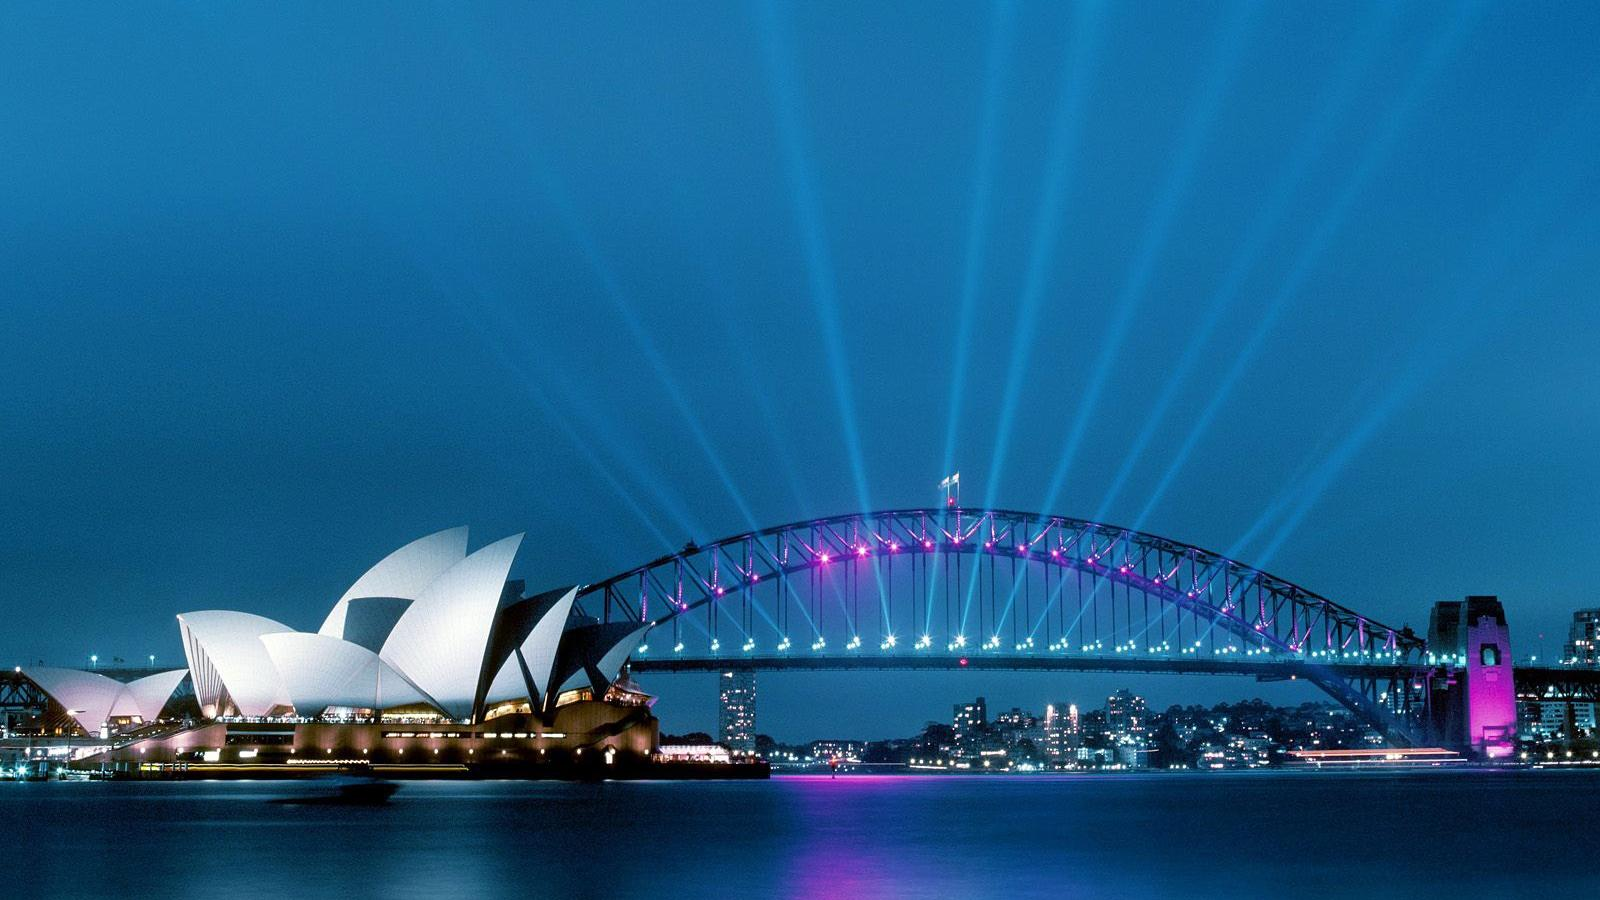 The Sydney Harbour bridge was lit up with LED lights for its yearly Vivid Sydney Festival